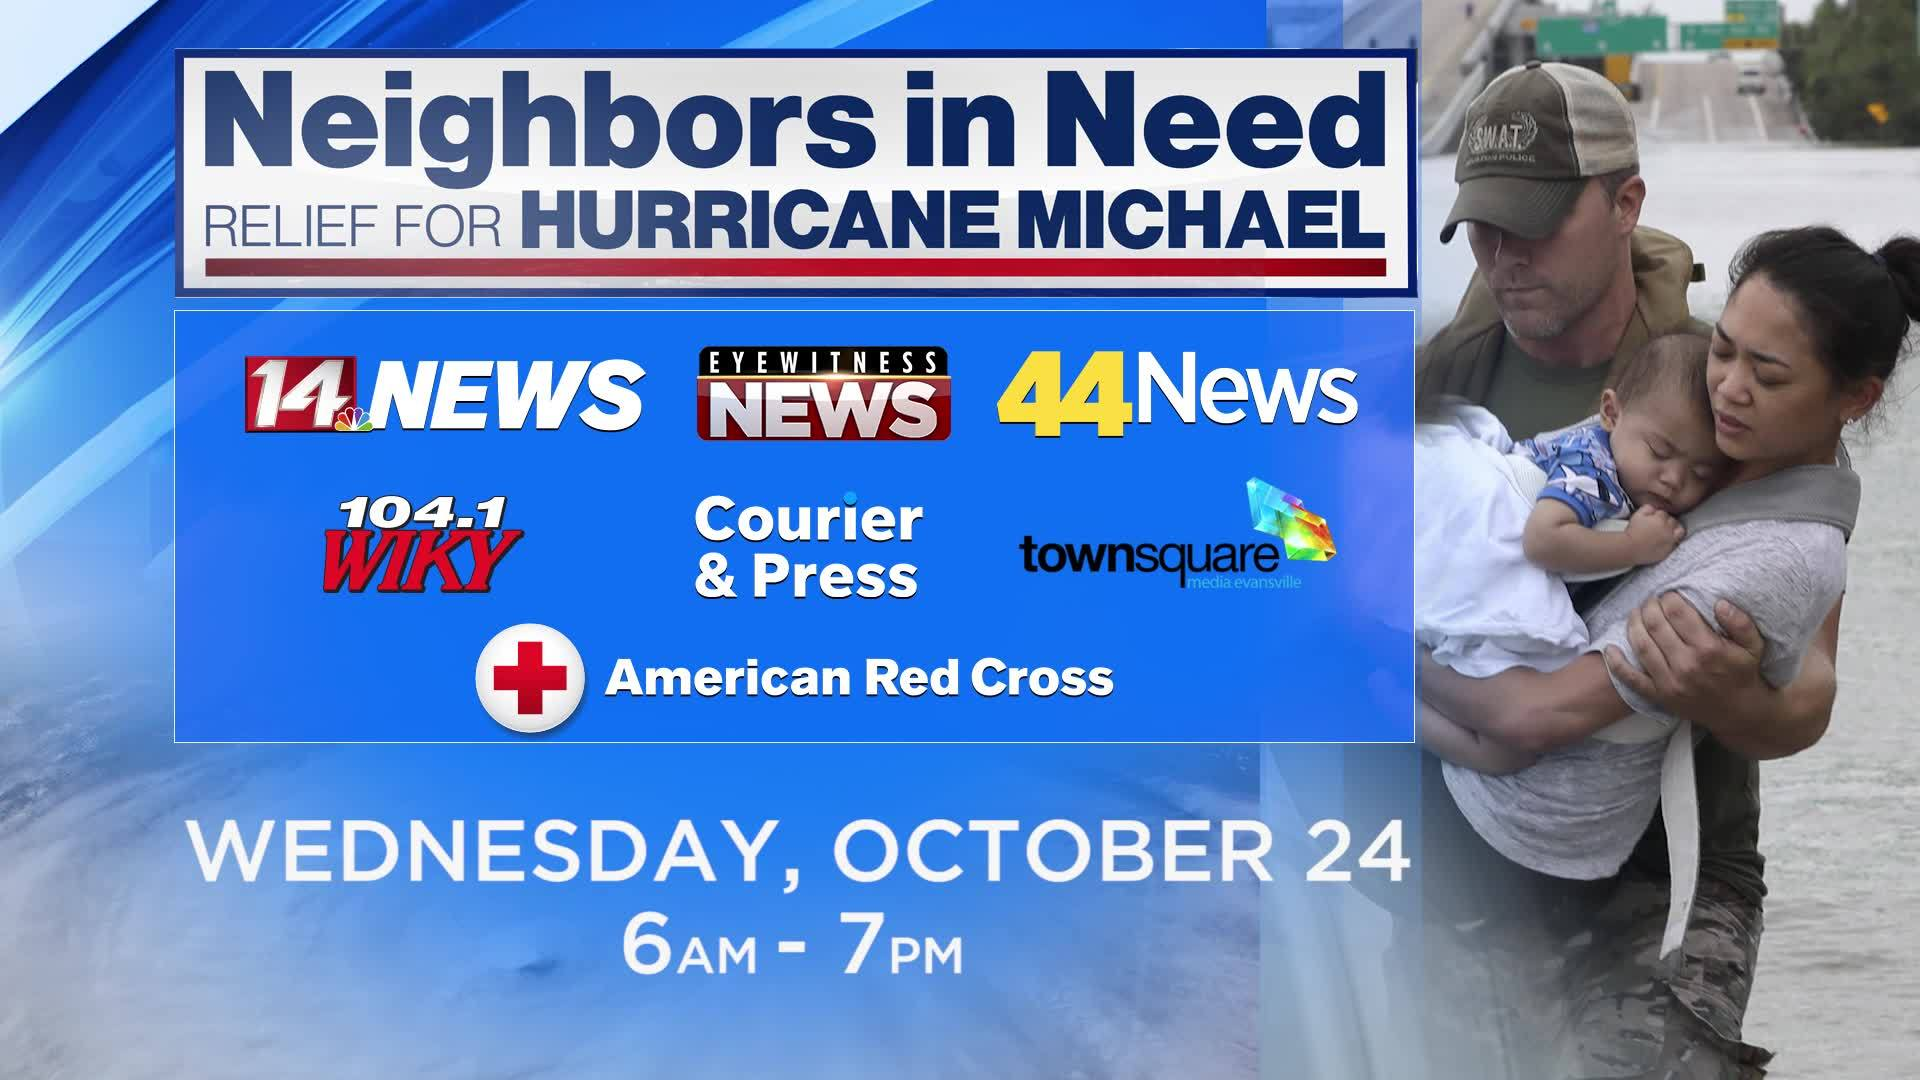 Neighbors in Need: Relief for Hurricane Michael